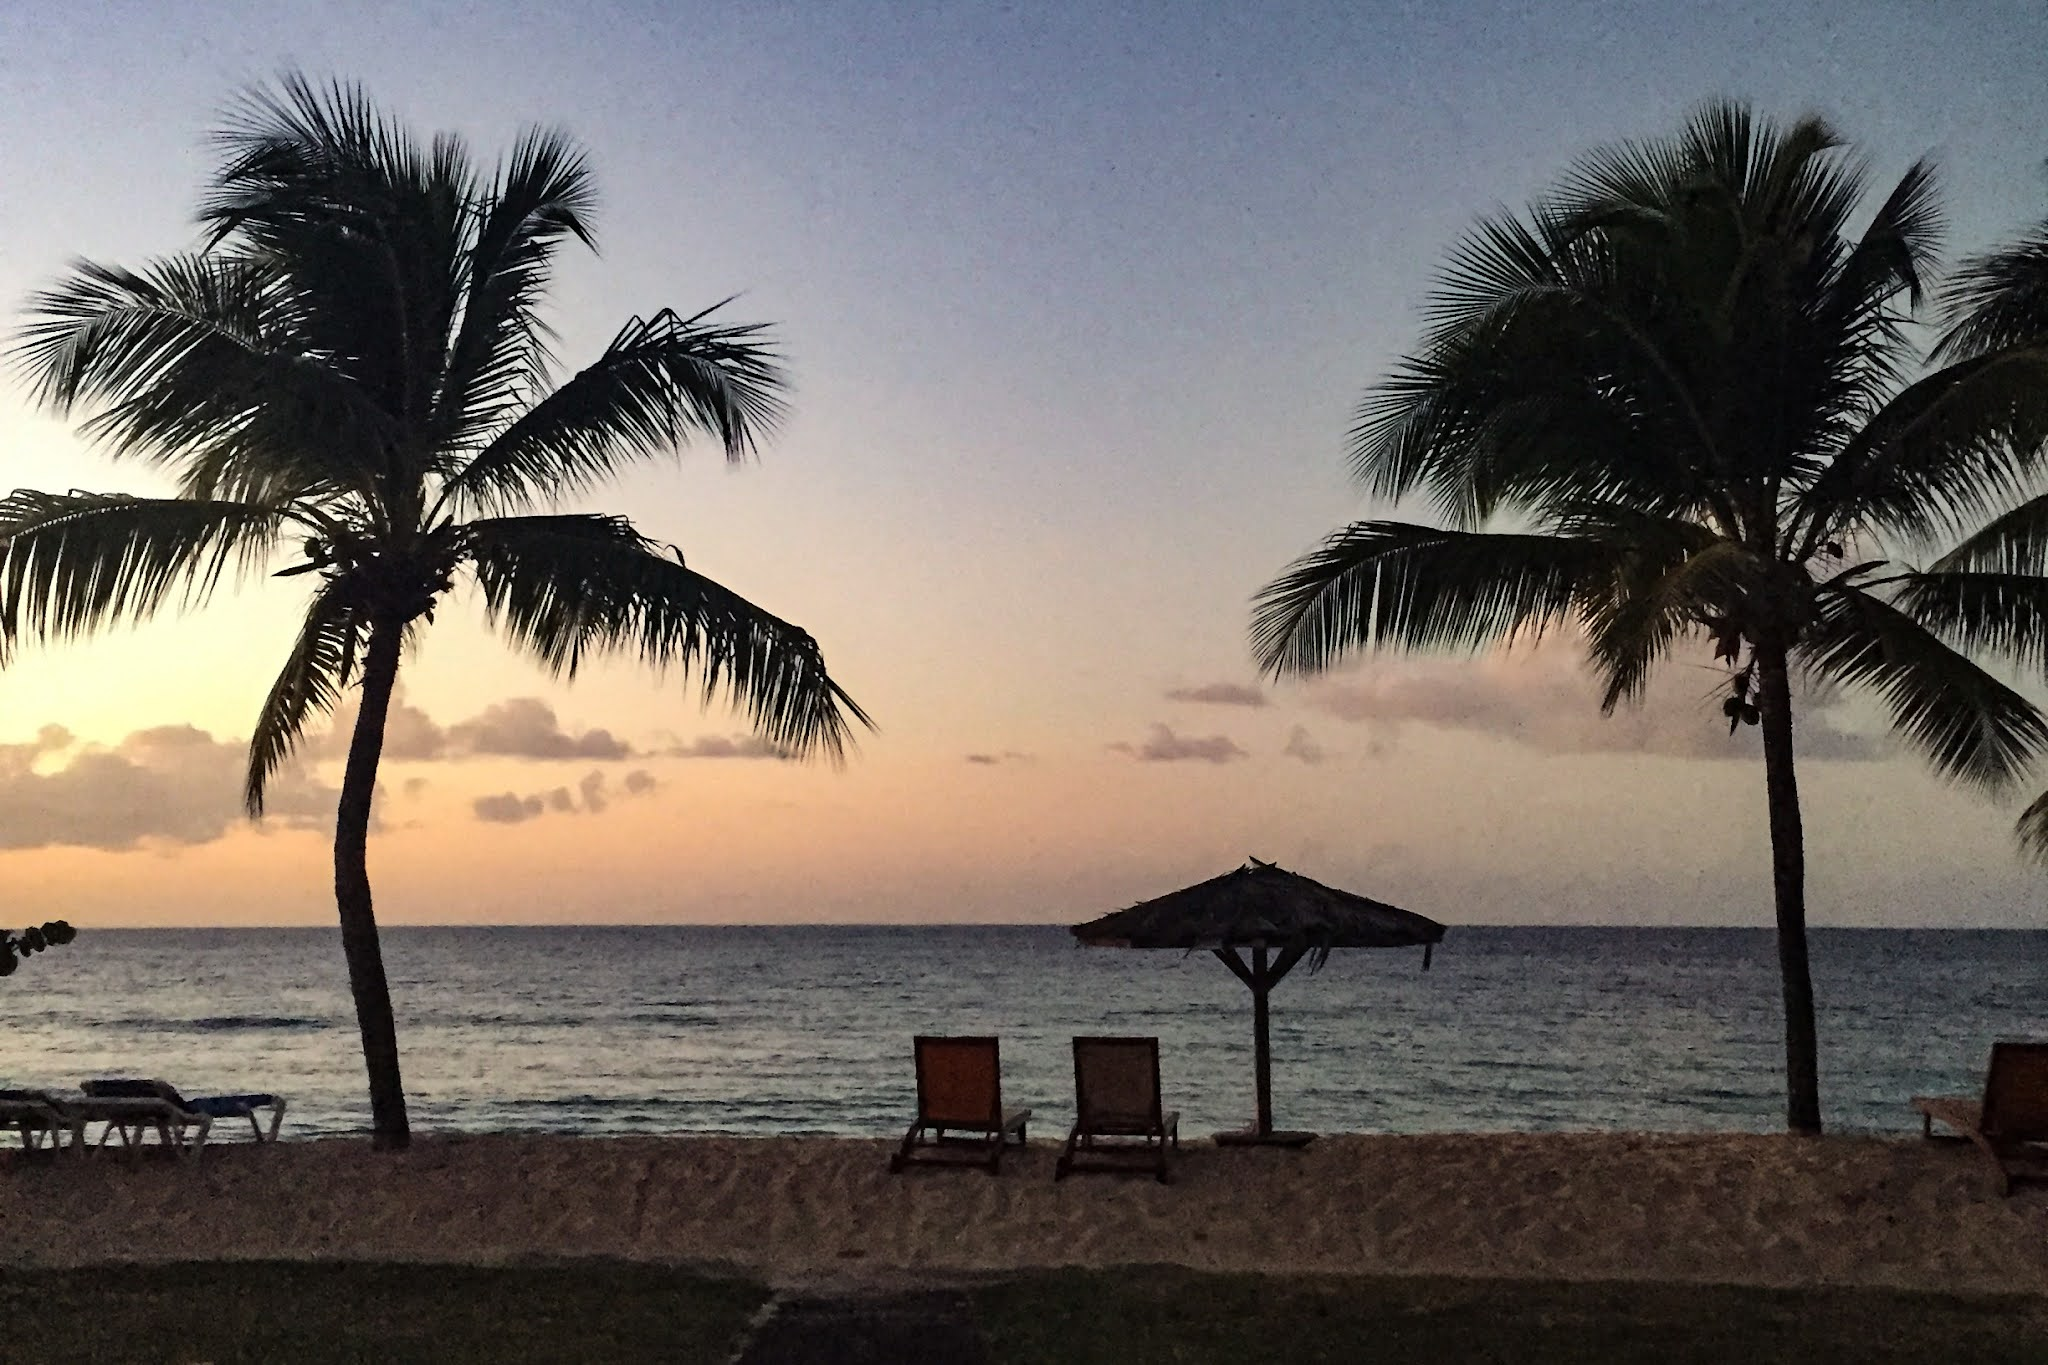 A sunset on a beach in Grenada showing palm trees an umbrella and seats